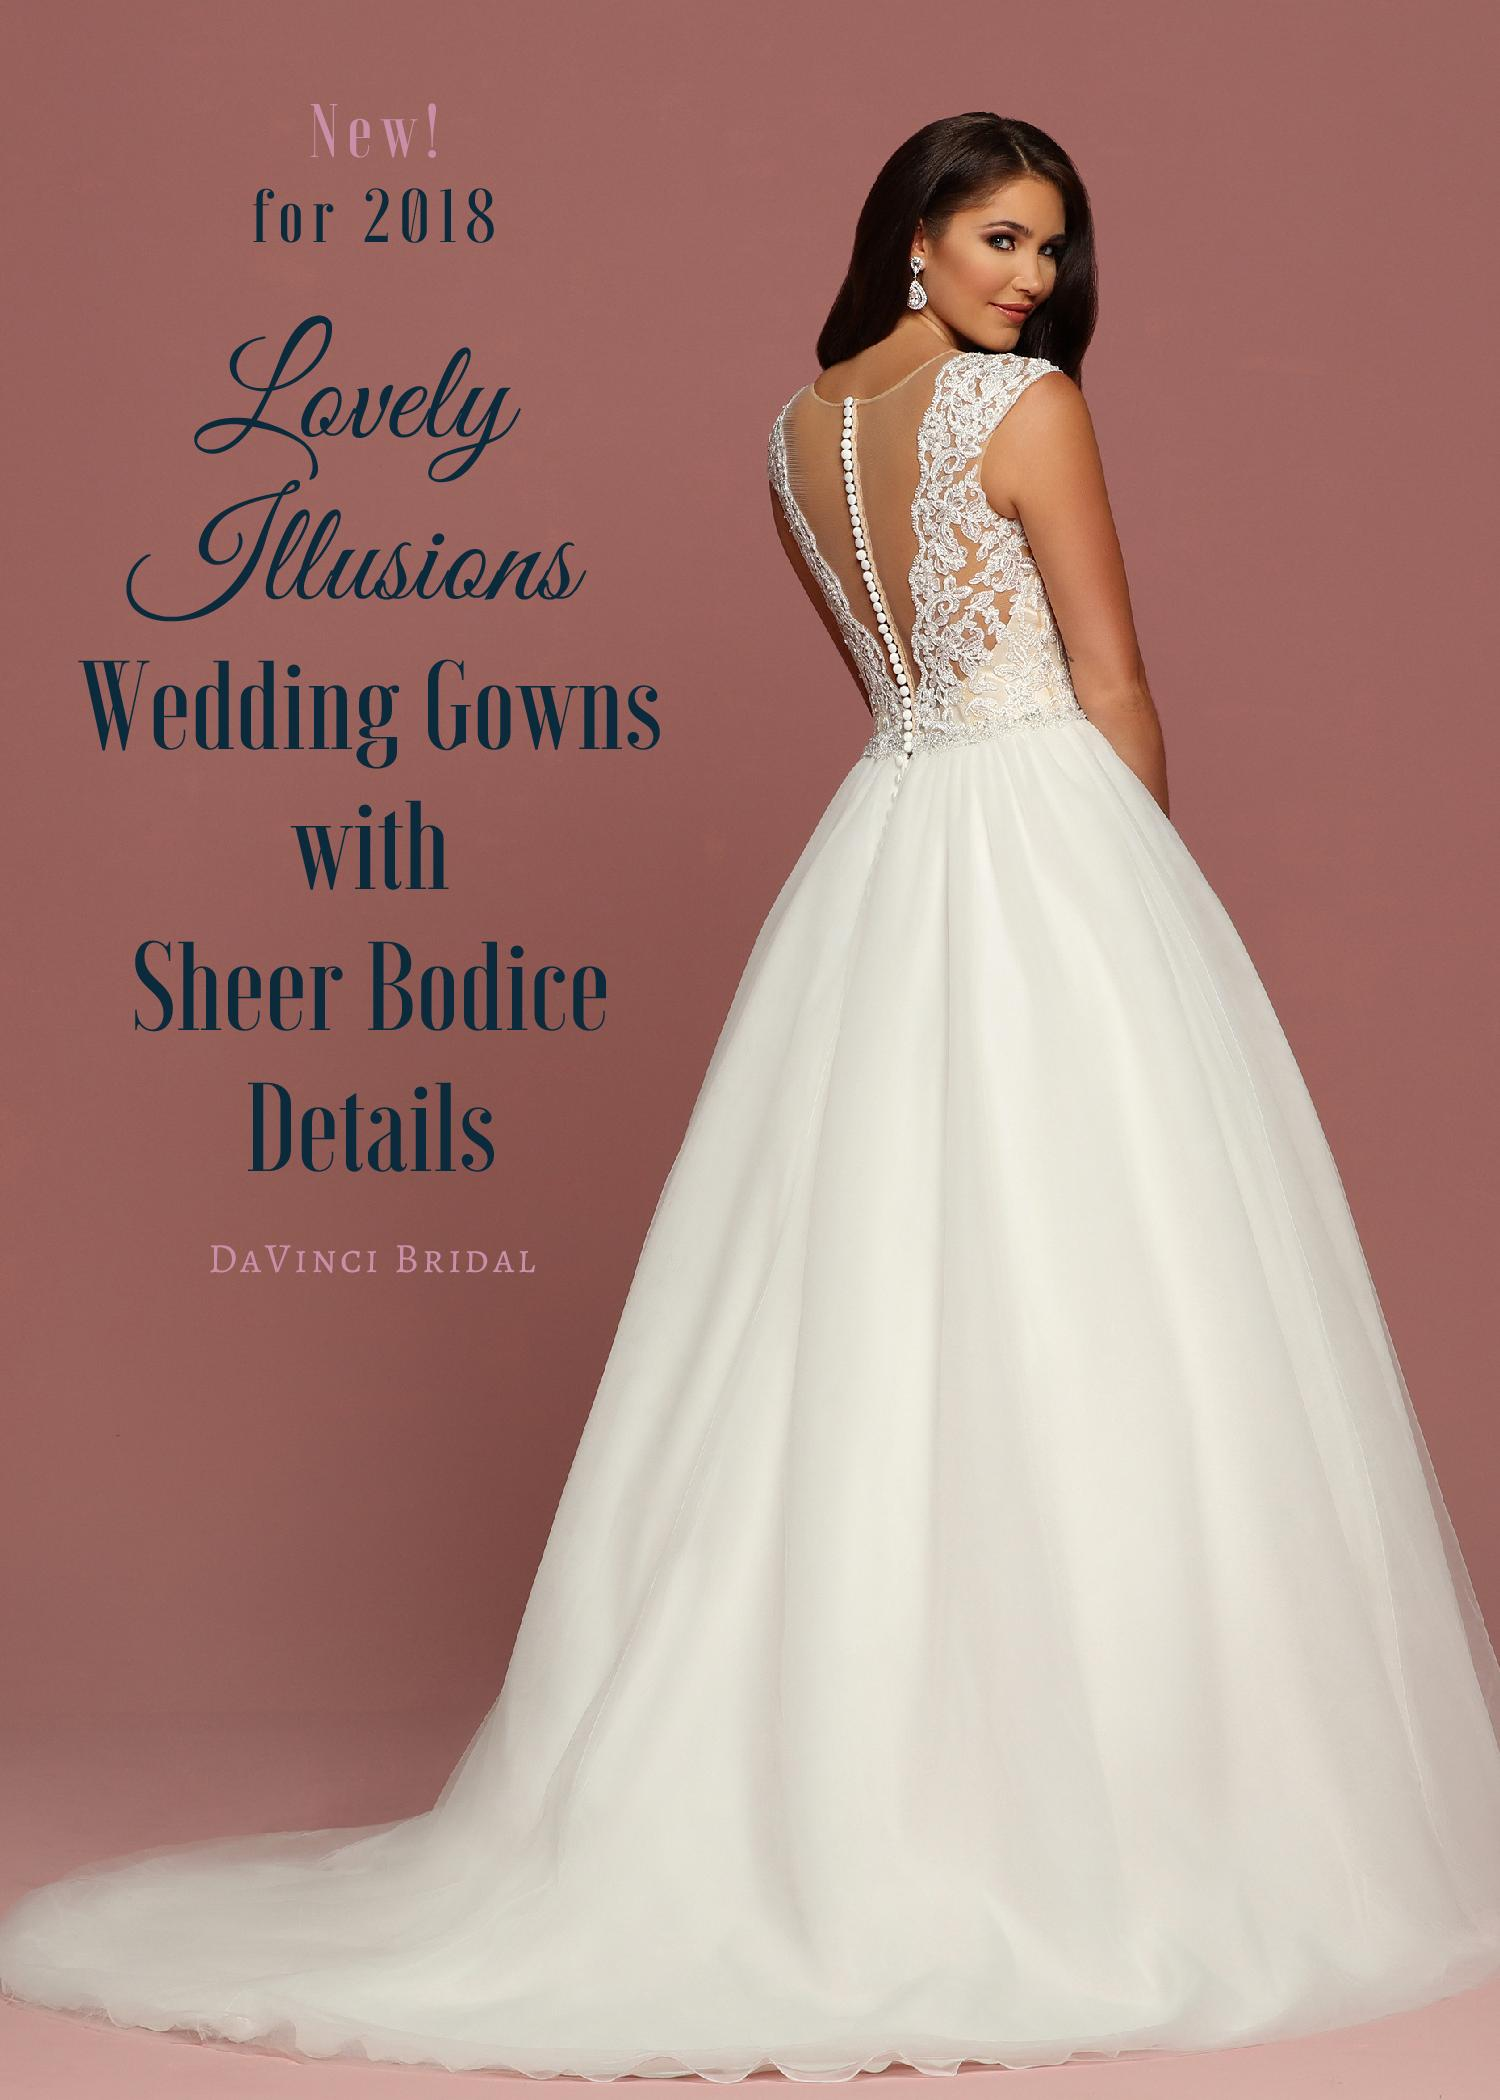 Lovely Illusion: Sheer Bodice Wedding Dresses - 2018 DaVinci Bridal Blog